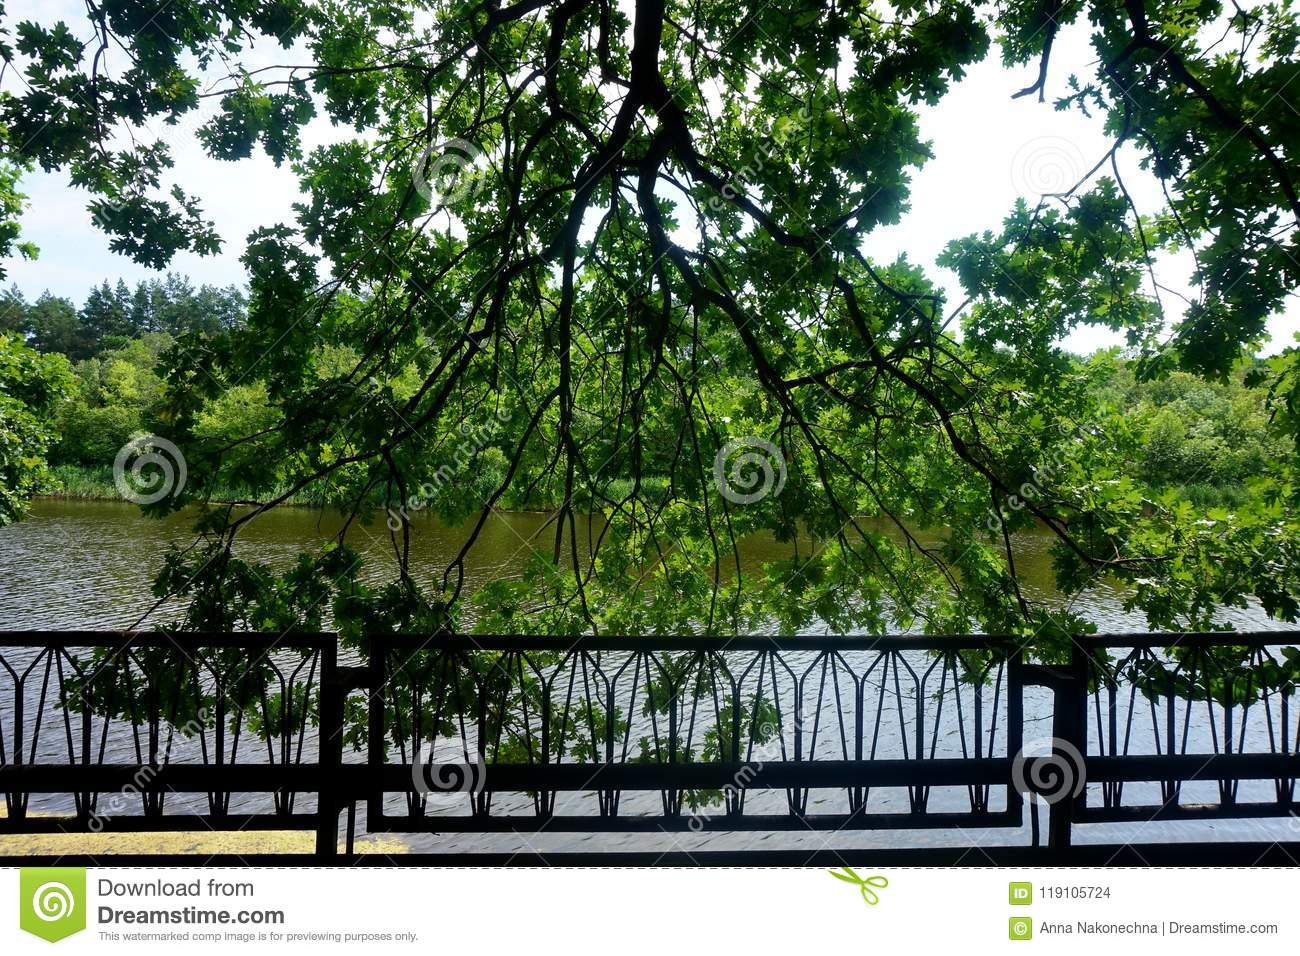 View of the tree branches on the embankment and the opposite shore.